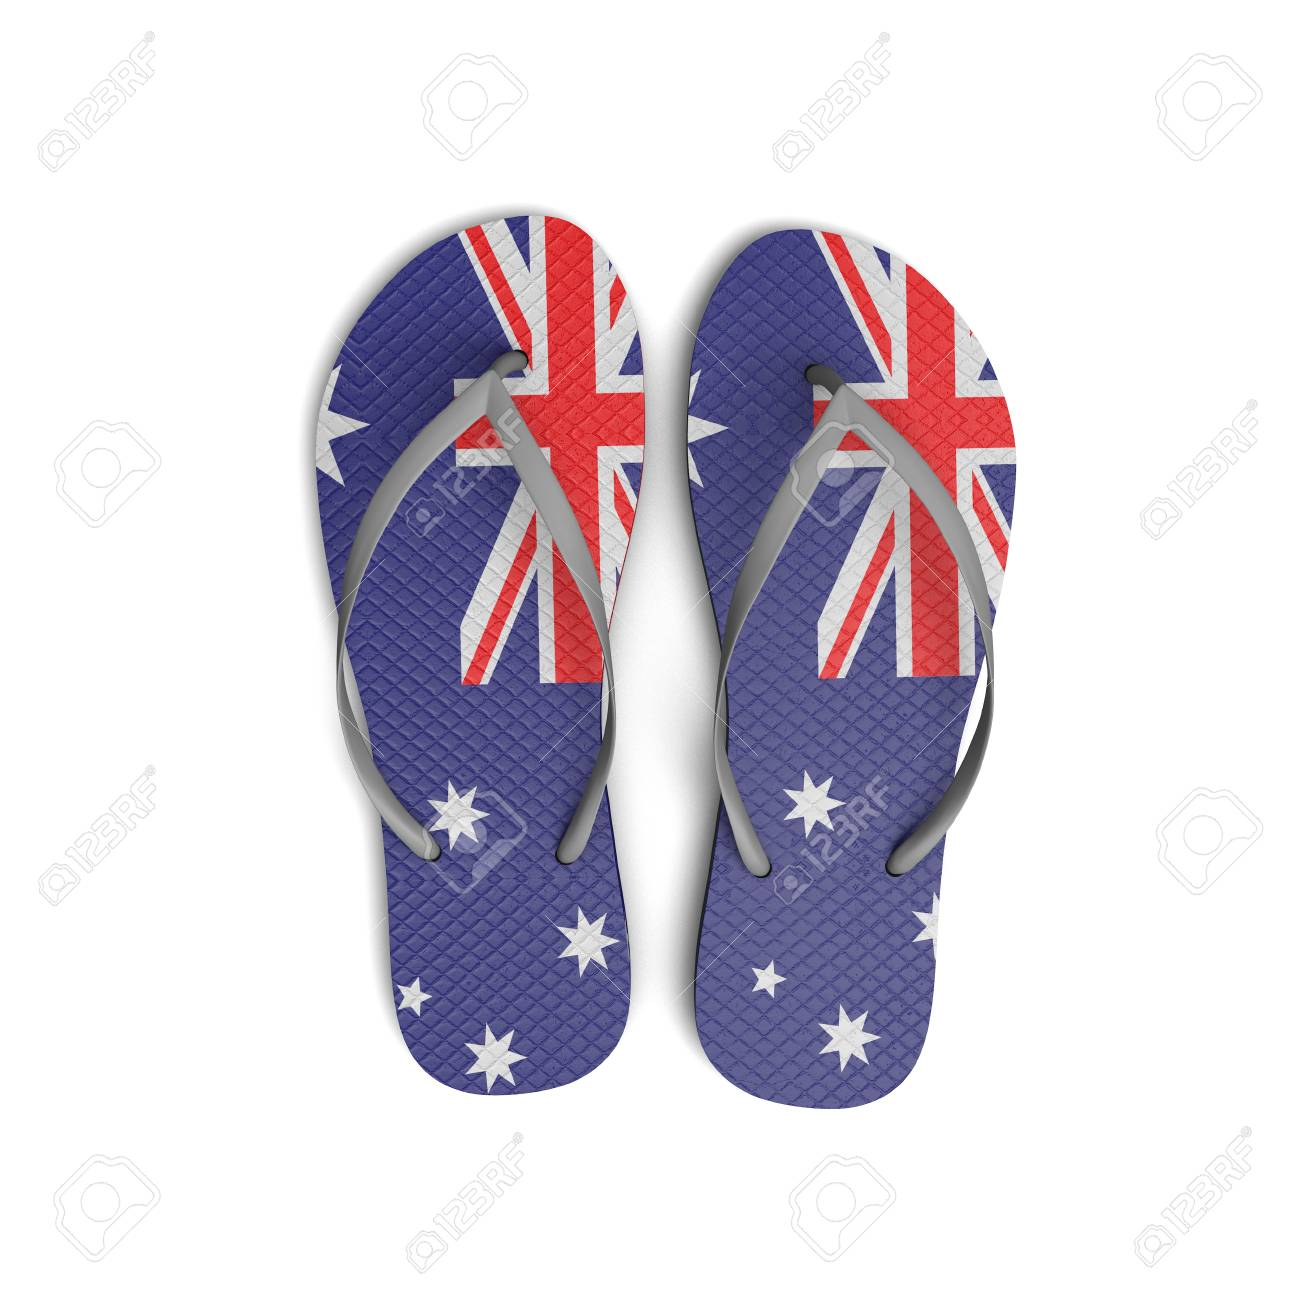 a13cfdc3d3f6 Australia flag flip flop sandals on a white background. 3D Rendering Stock  Photo - 91935391